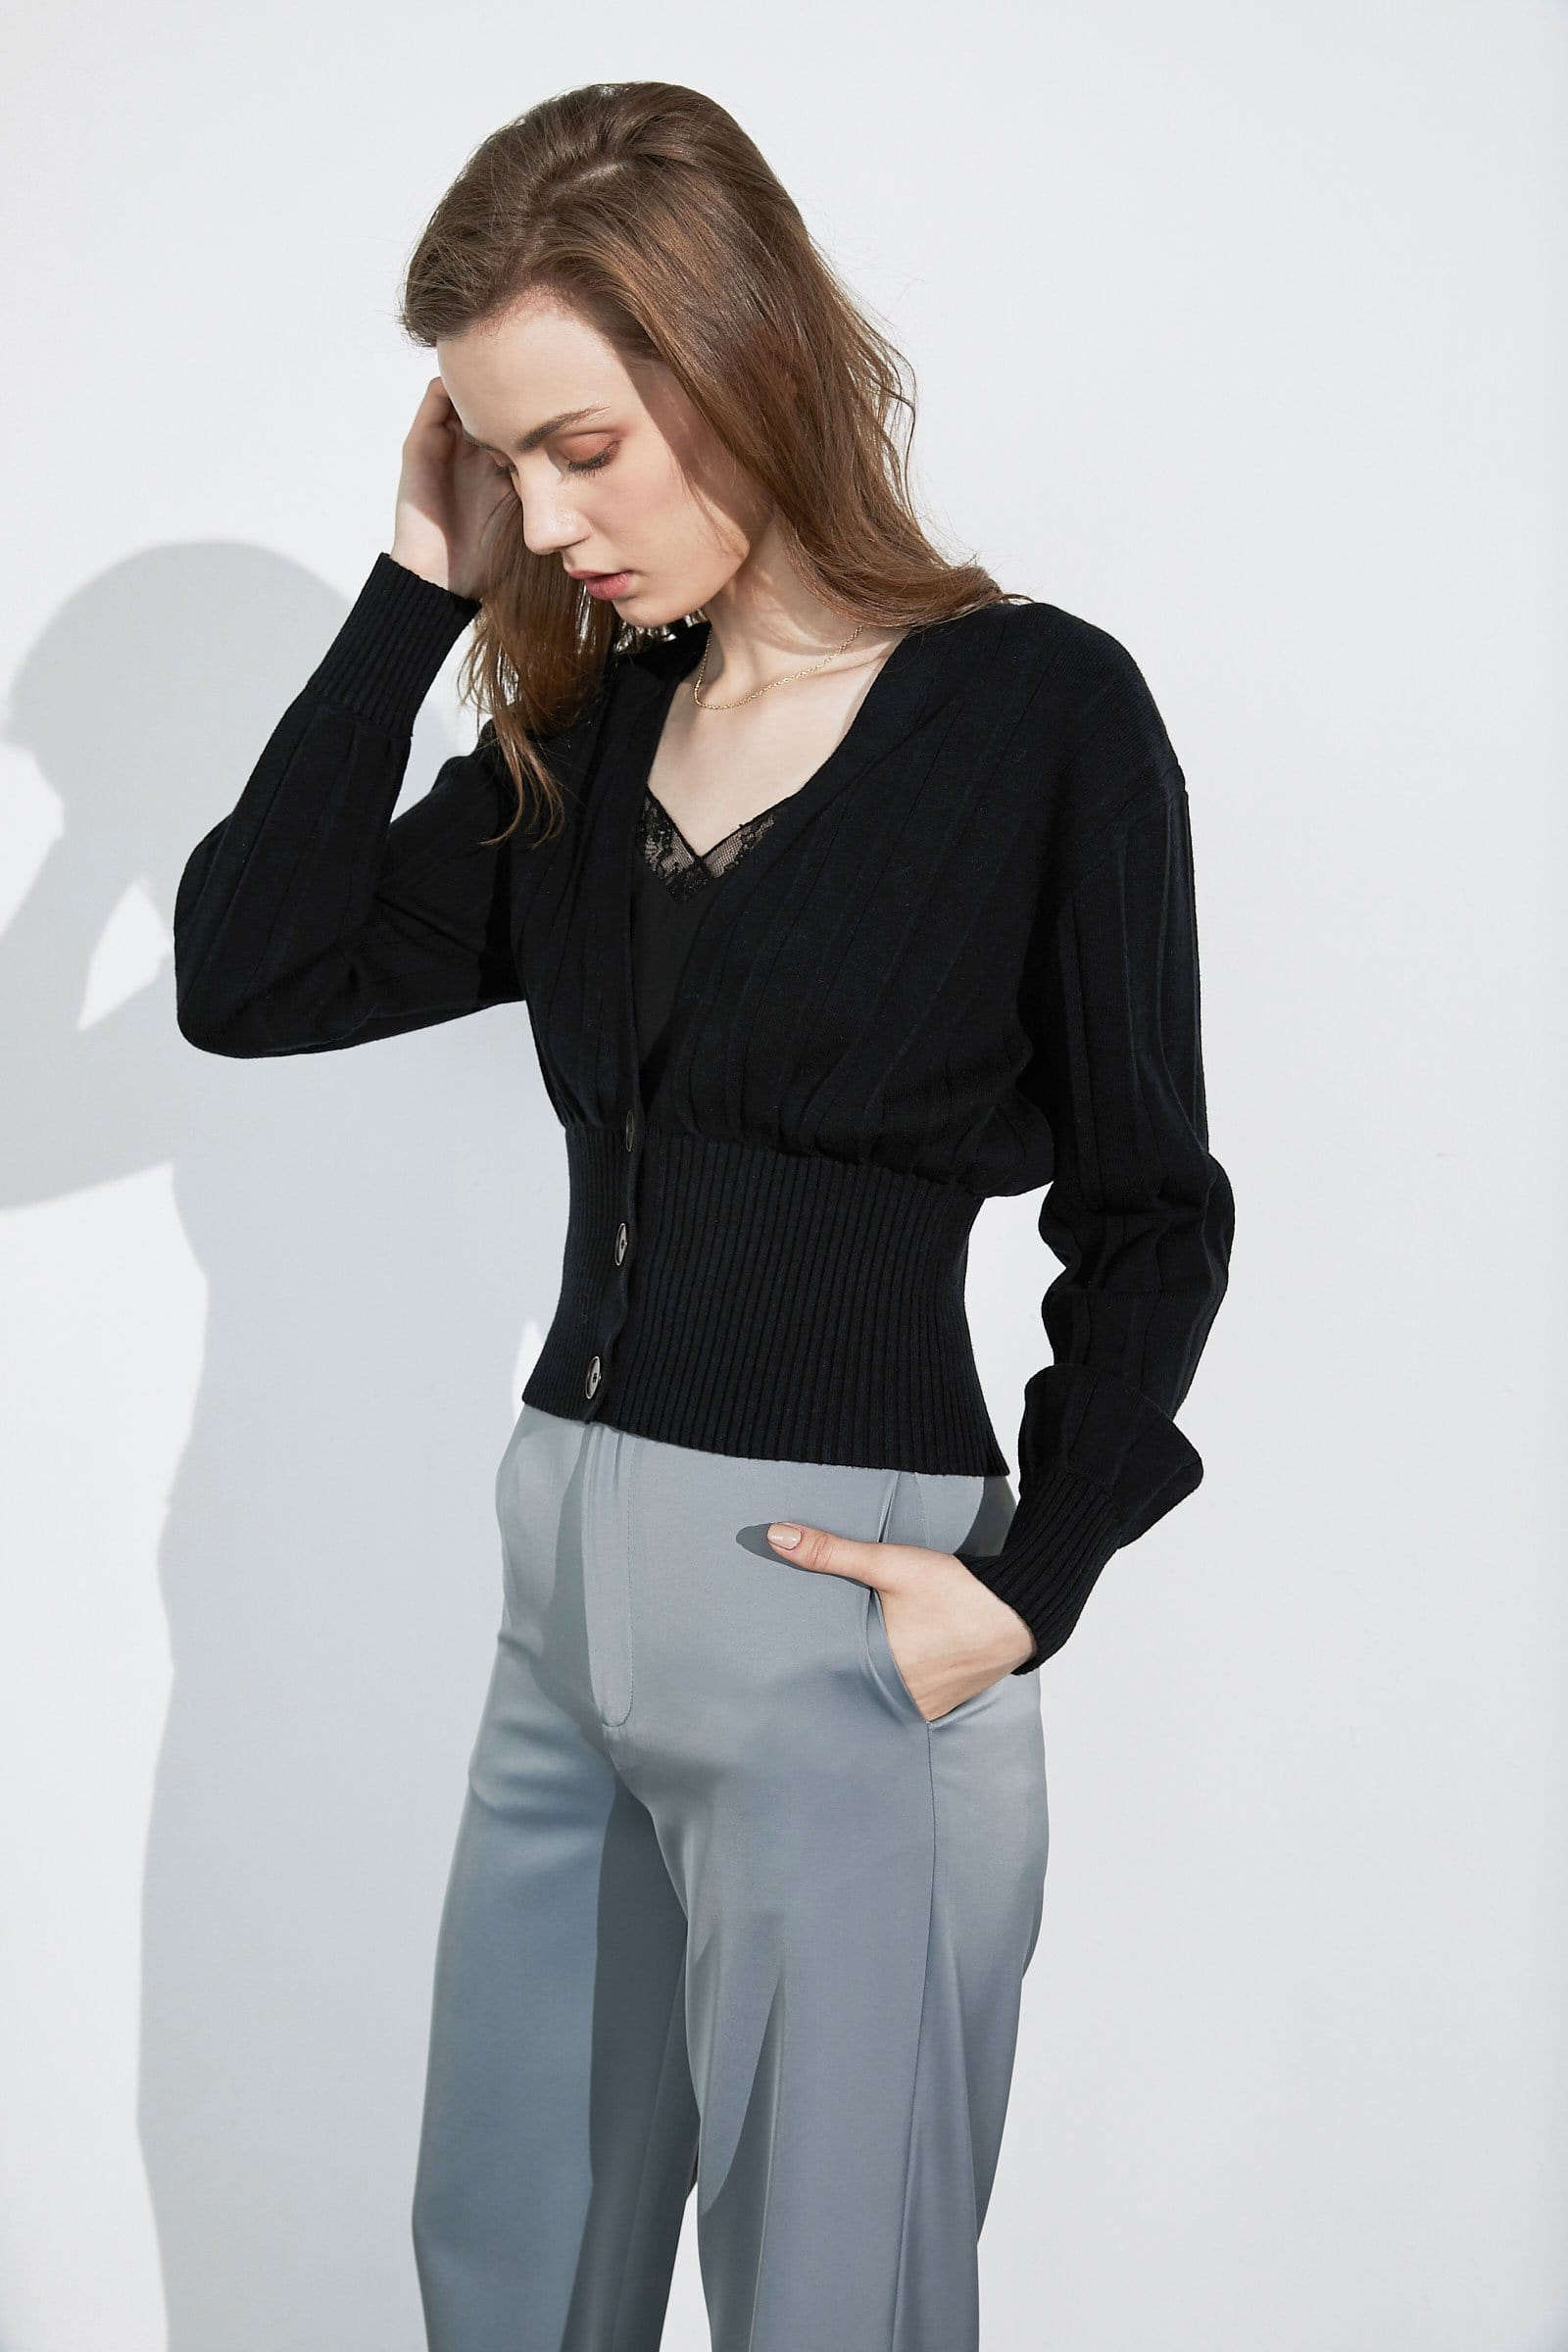 Eloise Black Cropped Cardigan